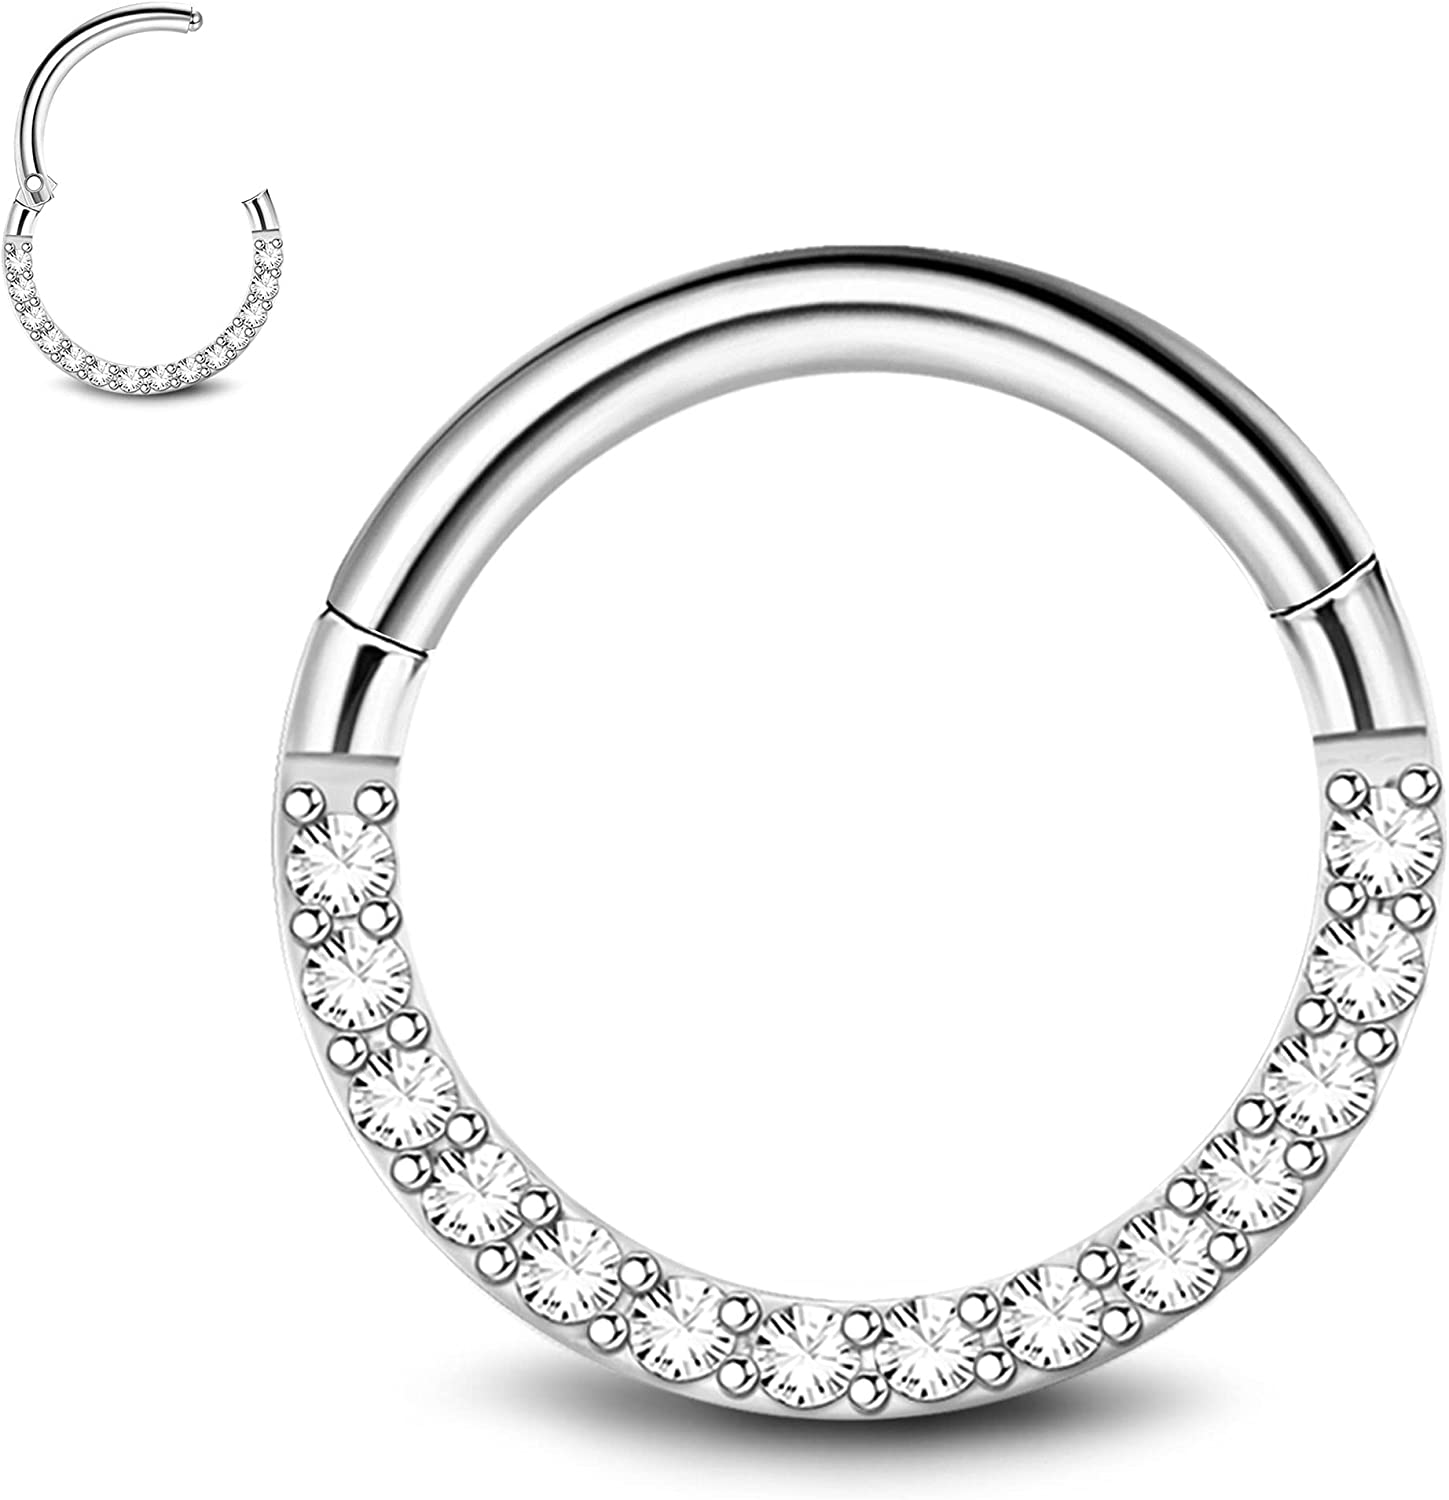 MILACOLATO CZ/Opal Hinged Nose Rings Hoop 316L Surgical Steel 16G 18G 6MM 8MM 10MM Body Pierecing Ring for Cartilage Helix Rook Daith Tragus Septum Clicker Ring Nose Piercing Jewelry